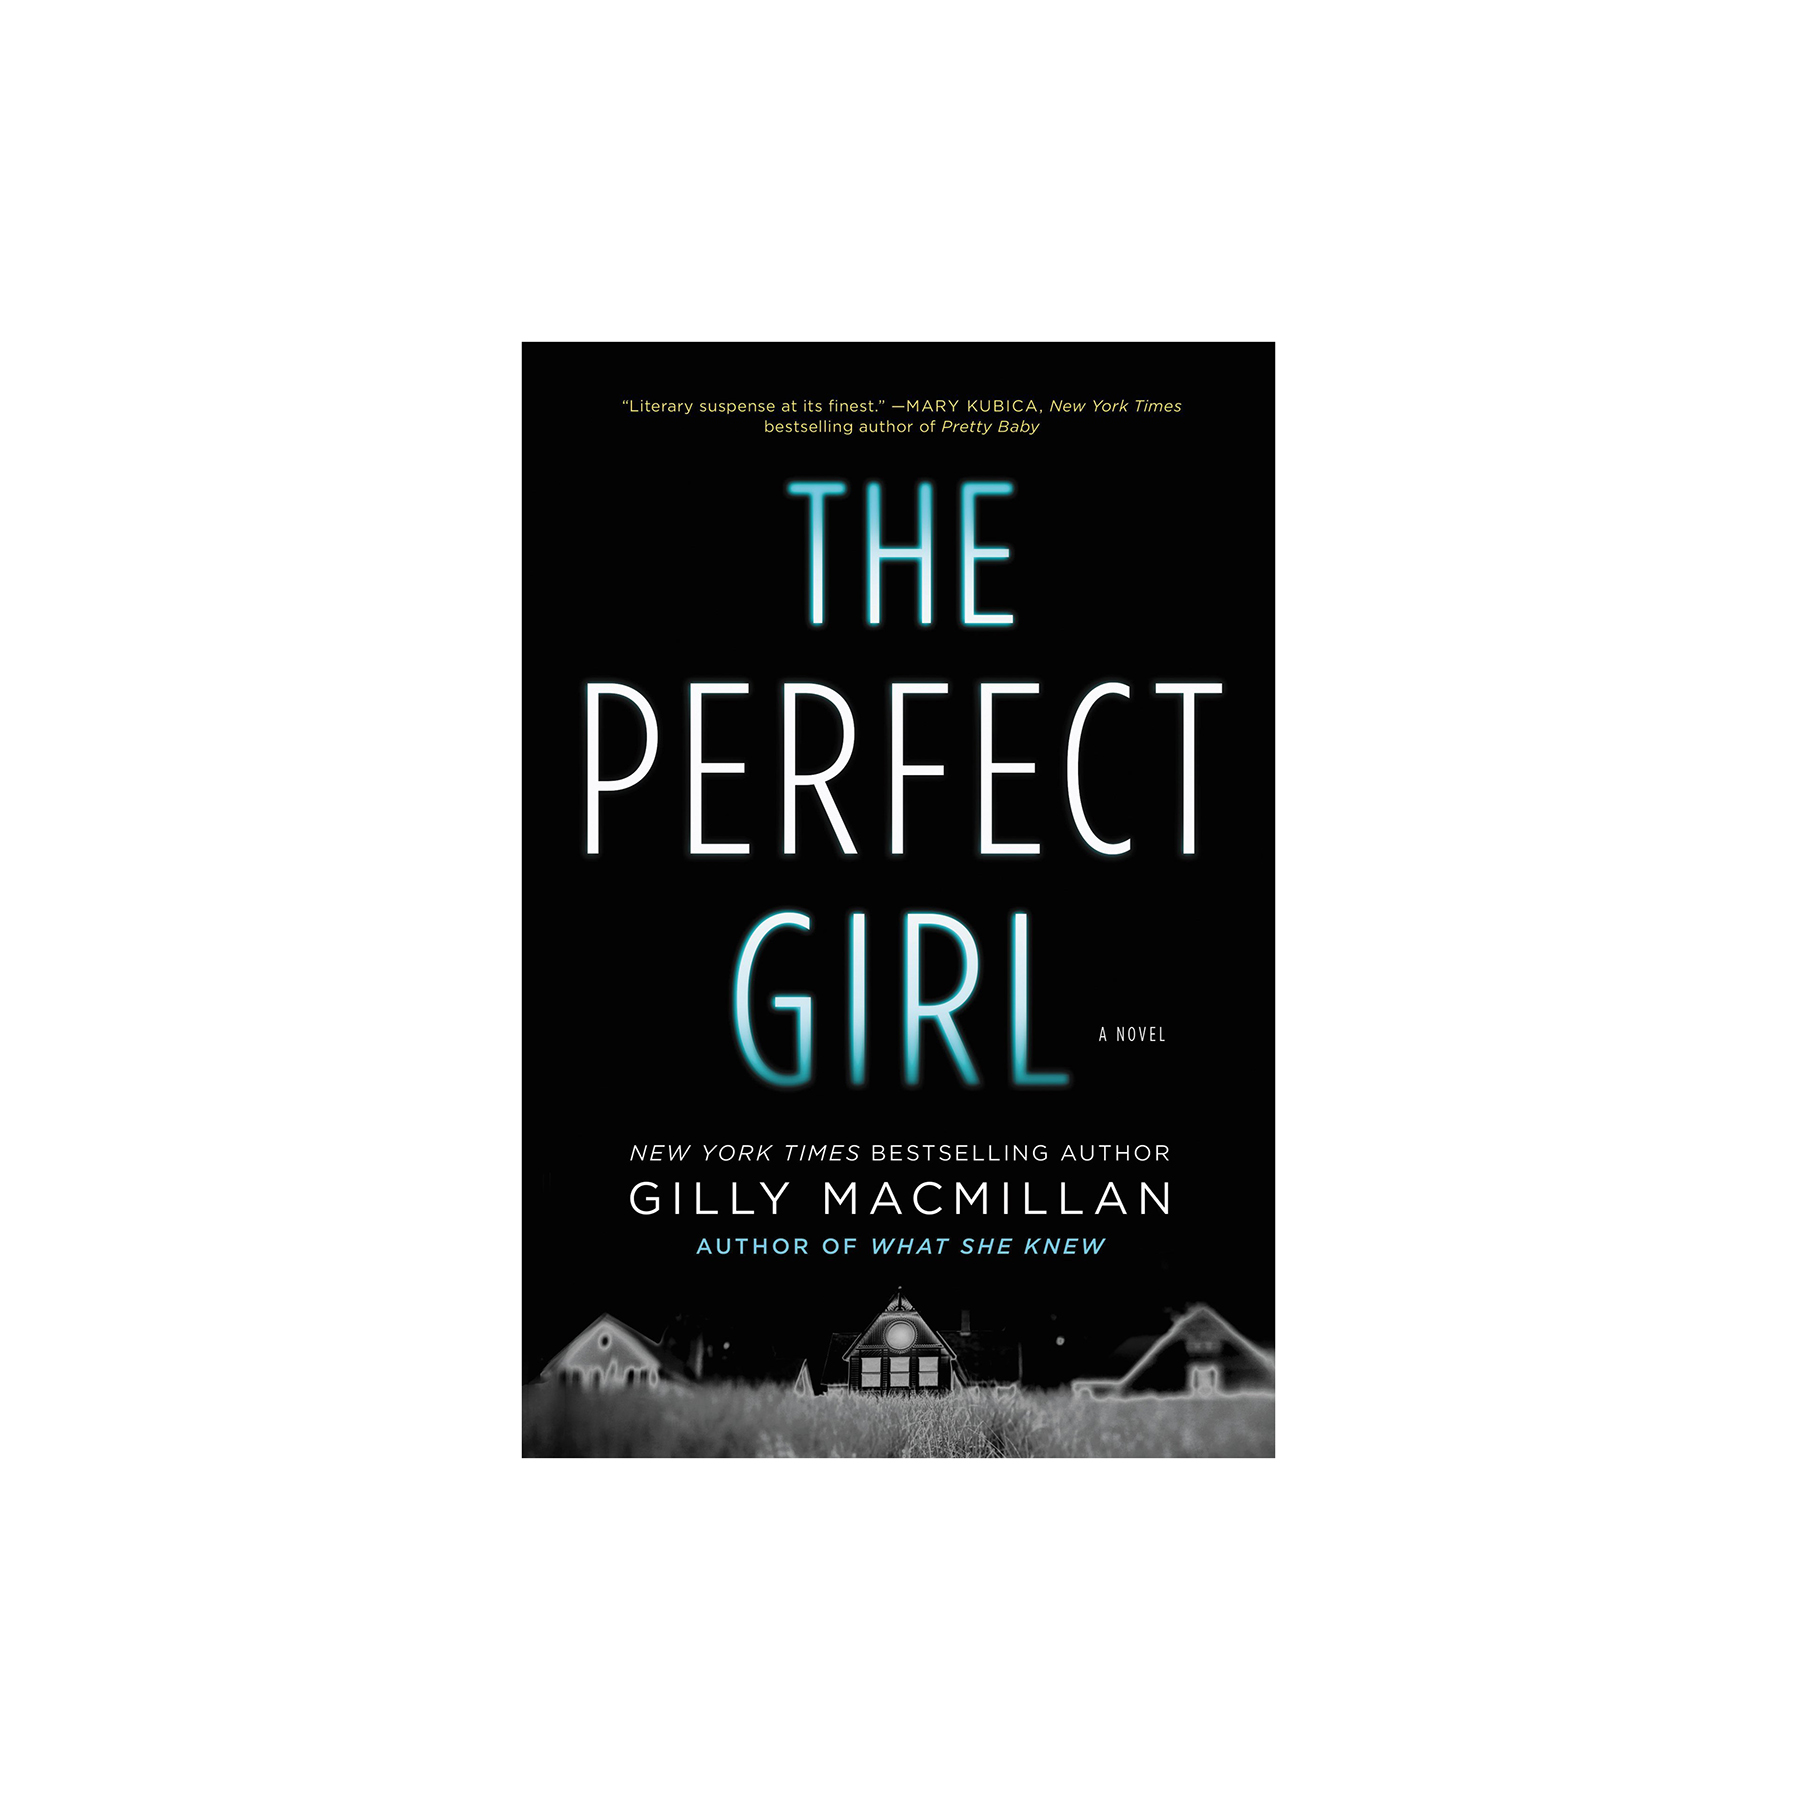 The Perfect Girl, by Gilly Macmillan